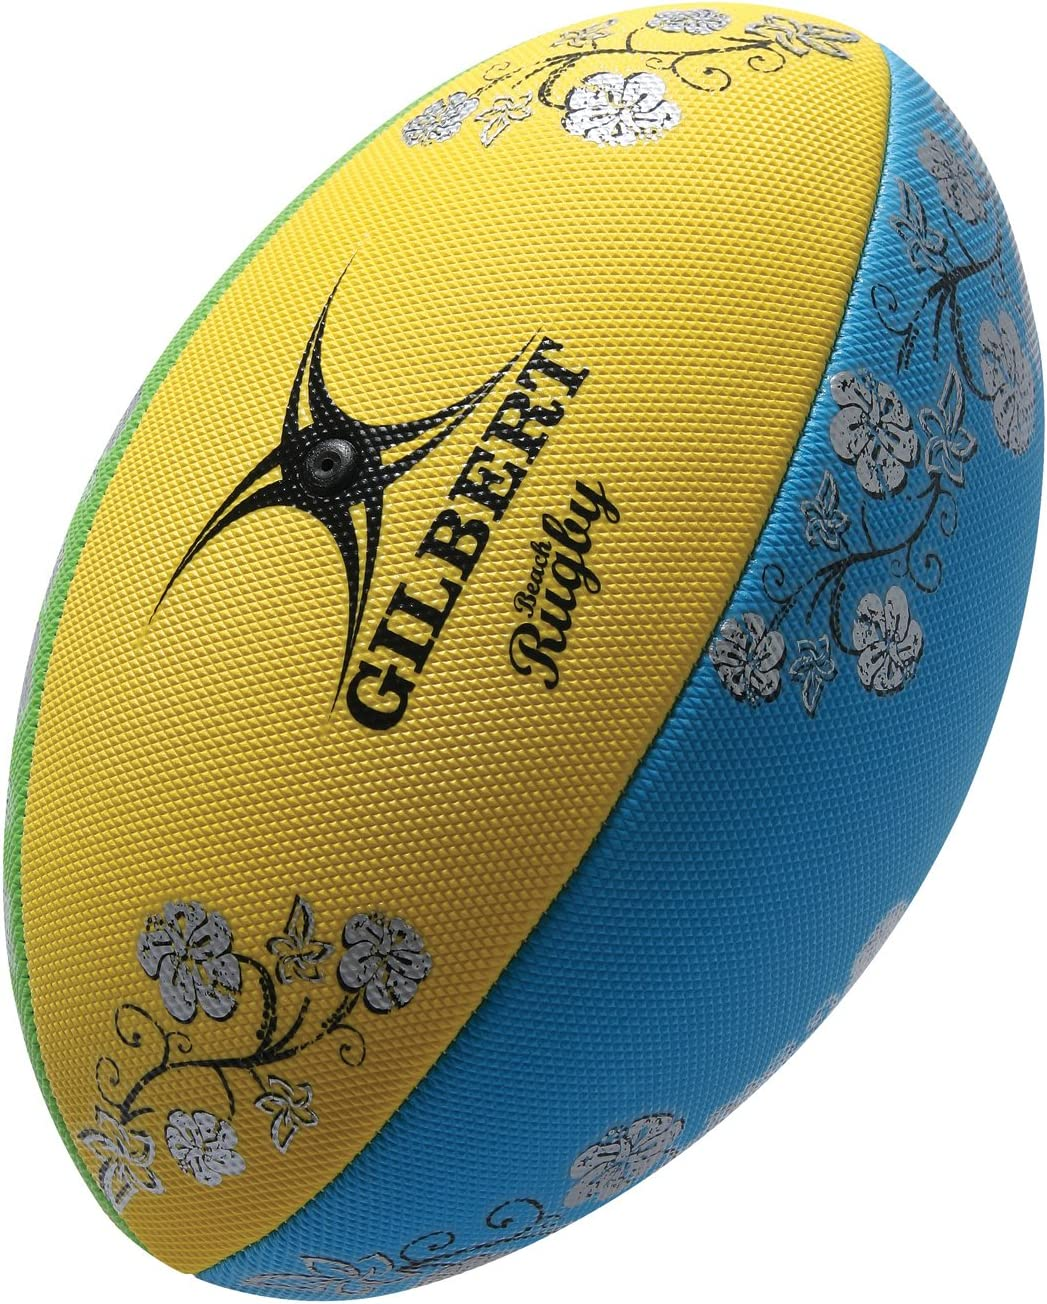 Gilbert Beach - Pelota de Rugby (Playa), Color Multicolor: Amazon ...